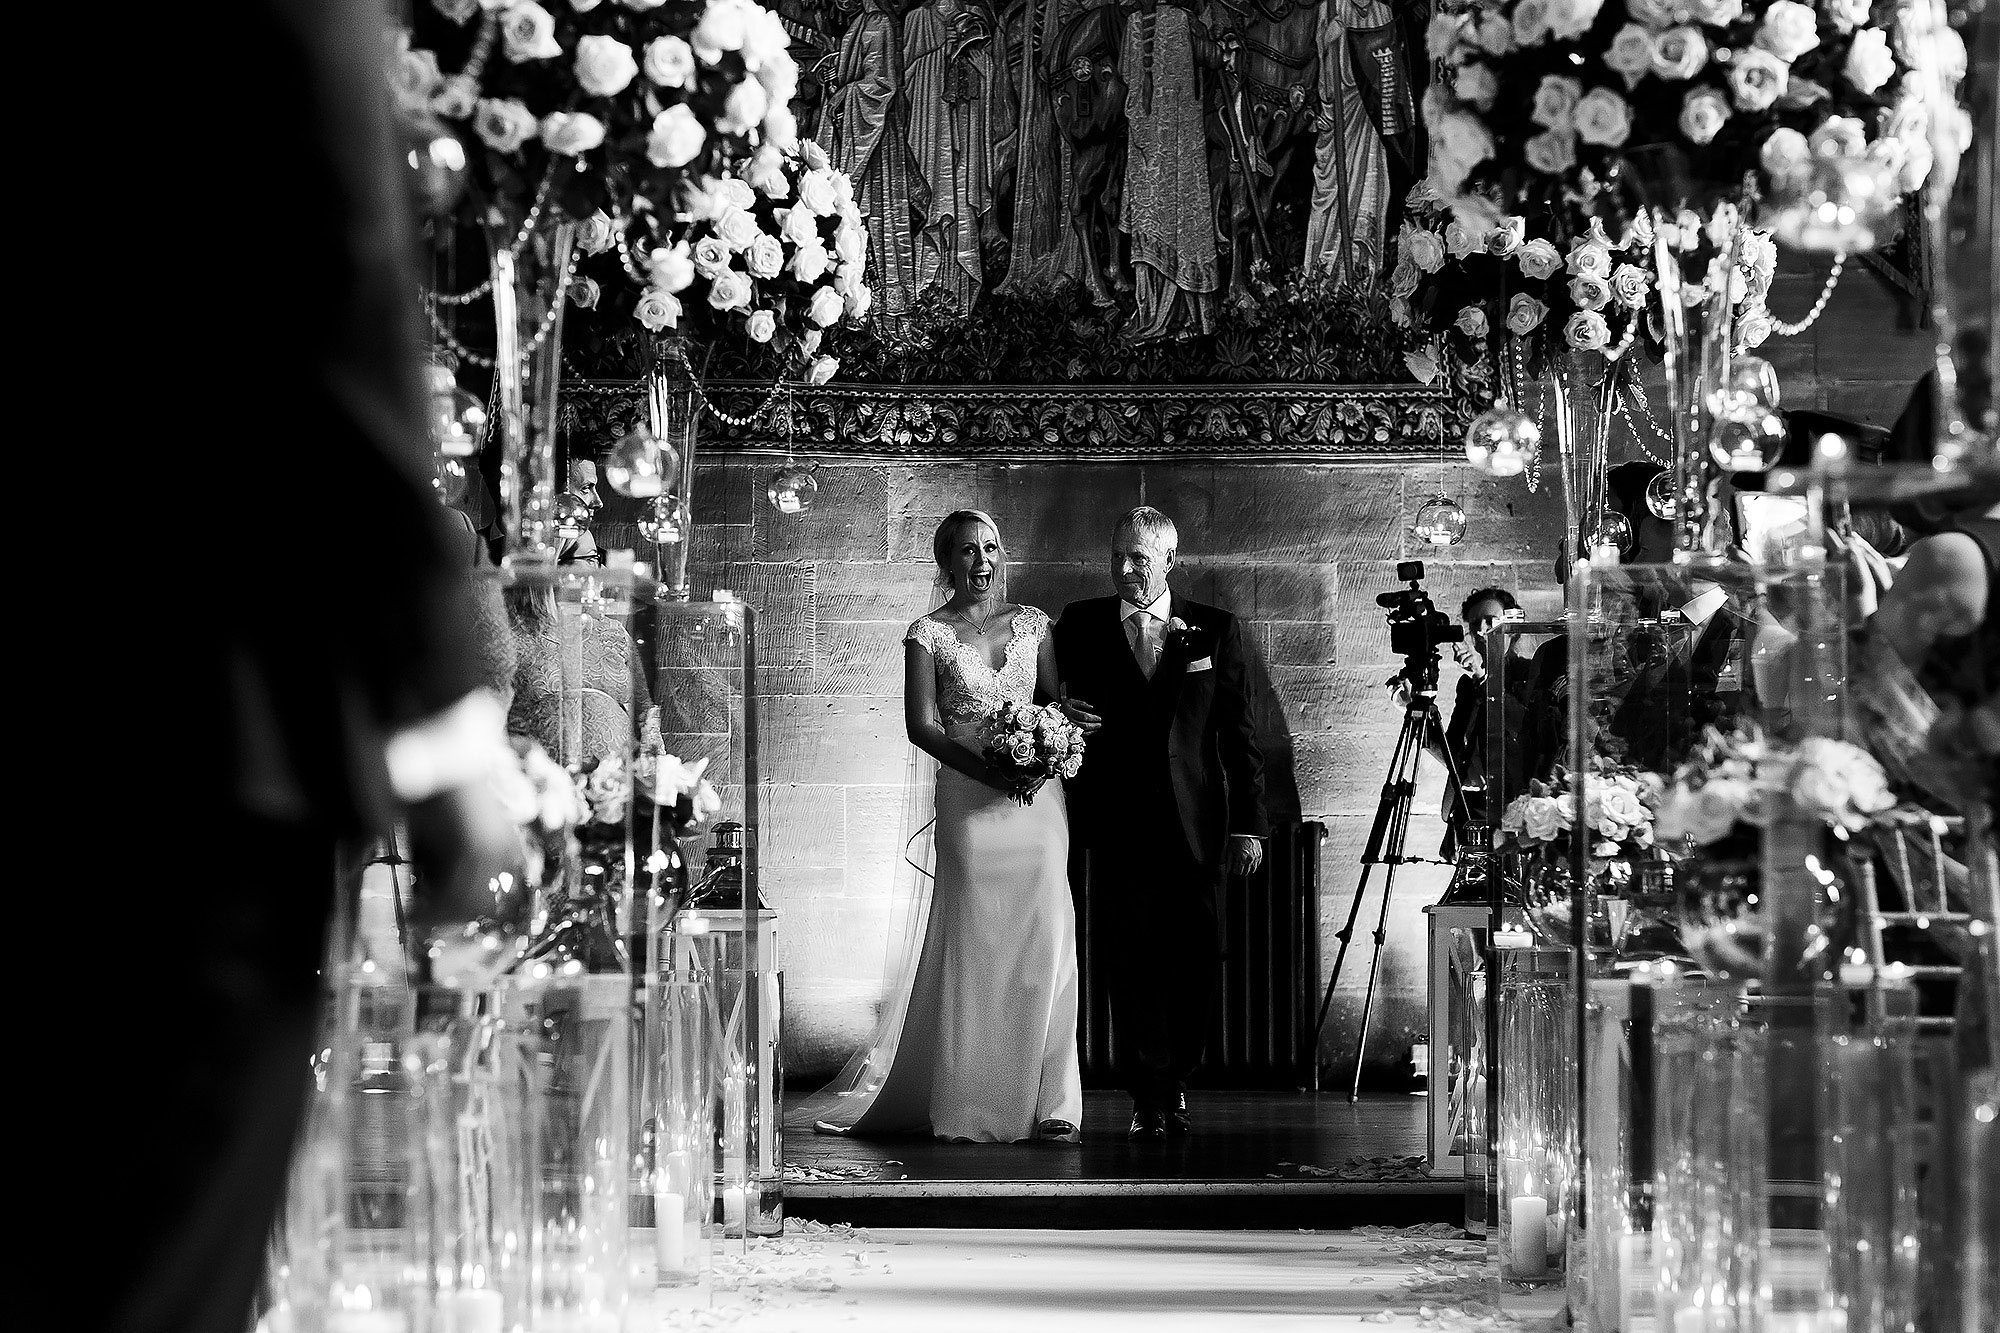 Bride looking excited as shes about to walk down the wedding aisle decorated with large floral display | Peckforton Castle Wedding by Toni Darcy Photography